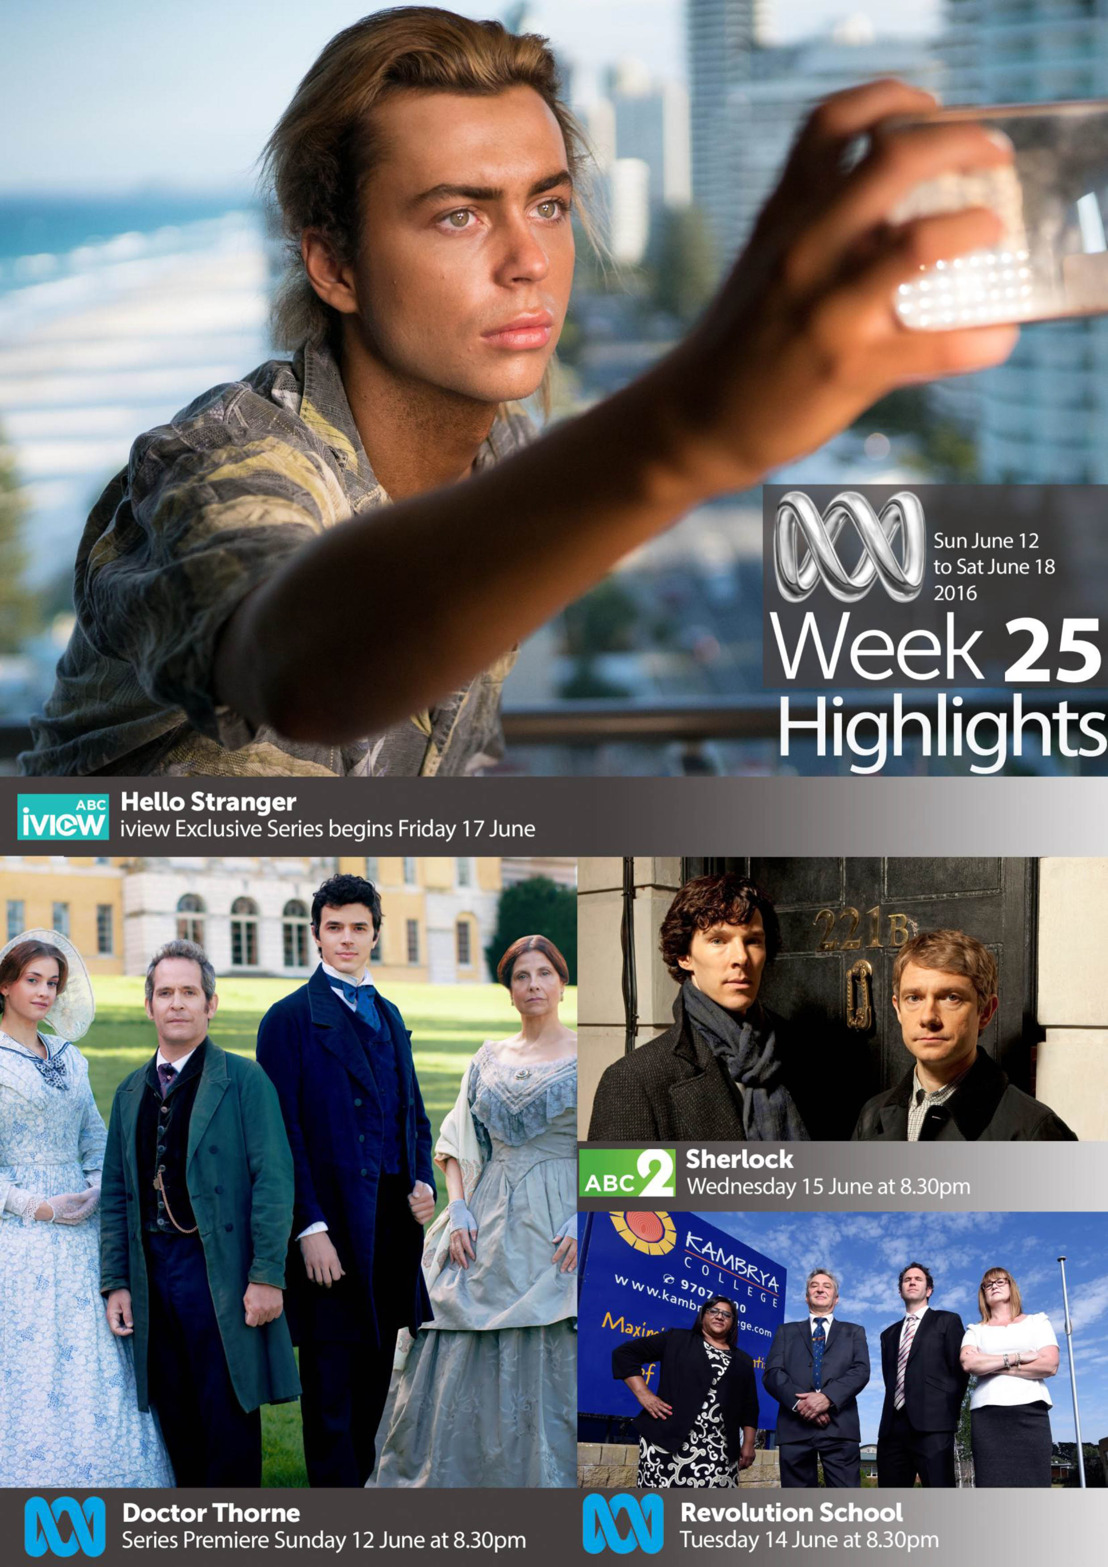 ABC Program Highlights - Week 25